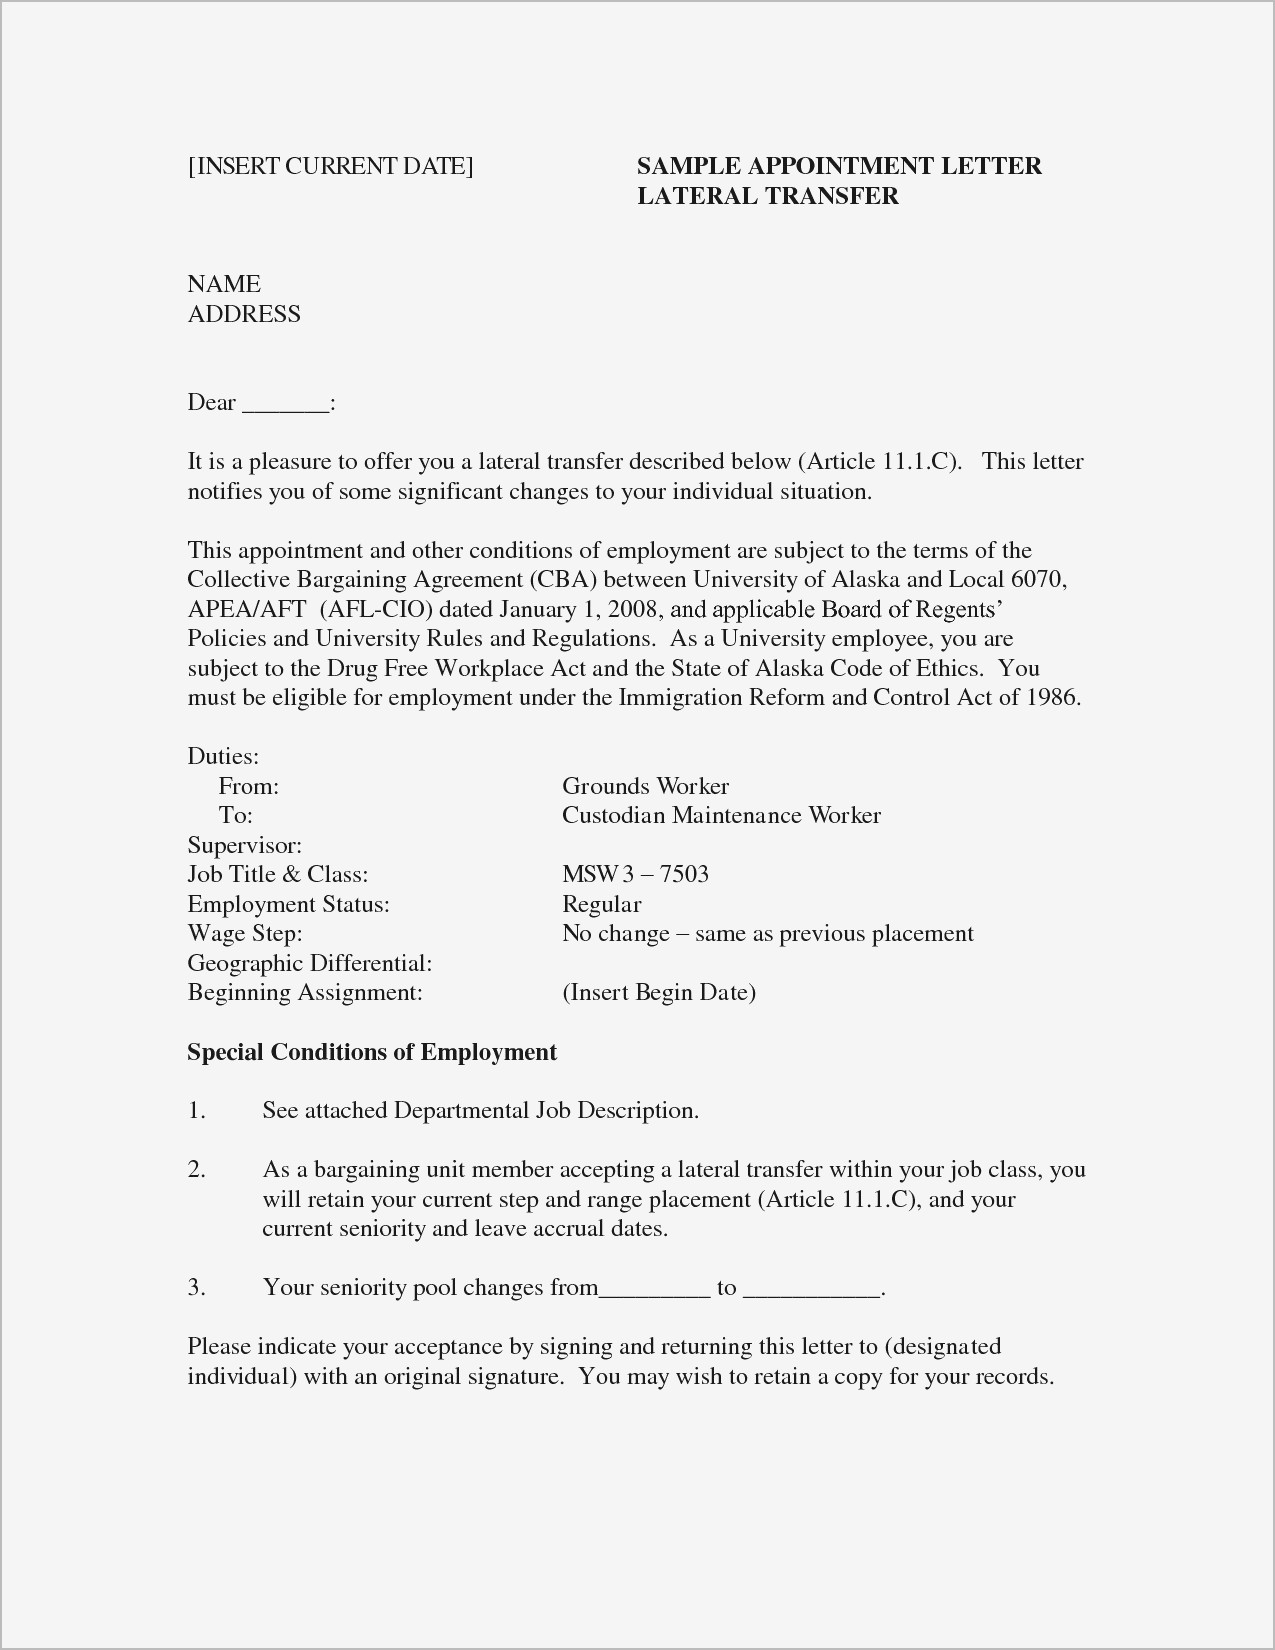 return of company property letter template Collection-opt offer letter template 13-r